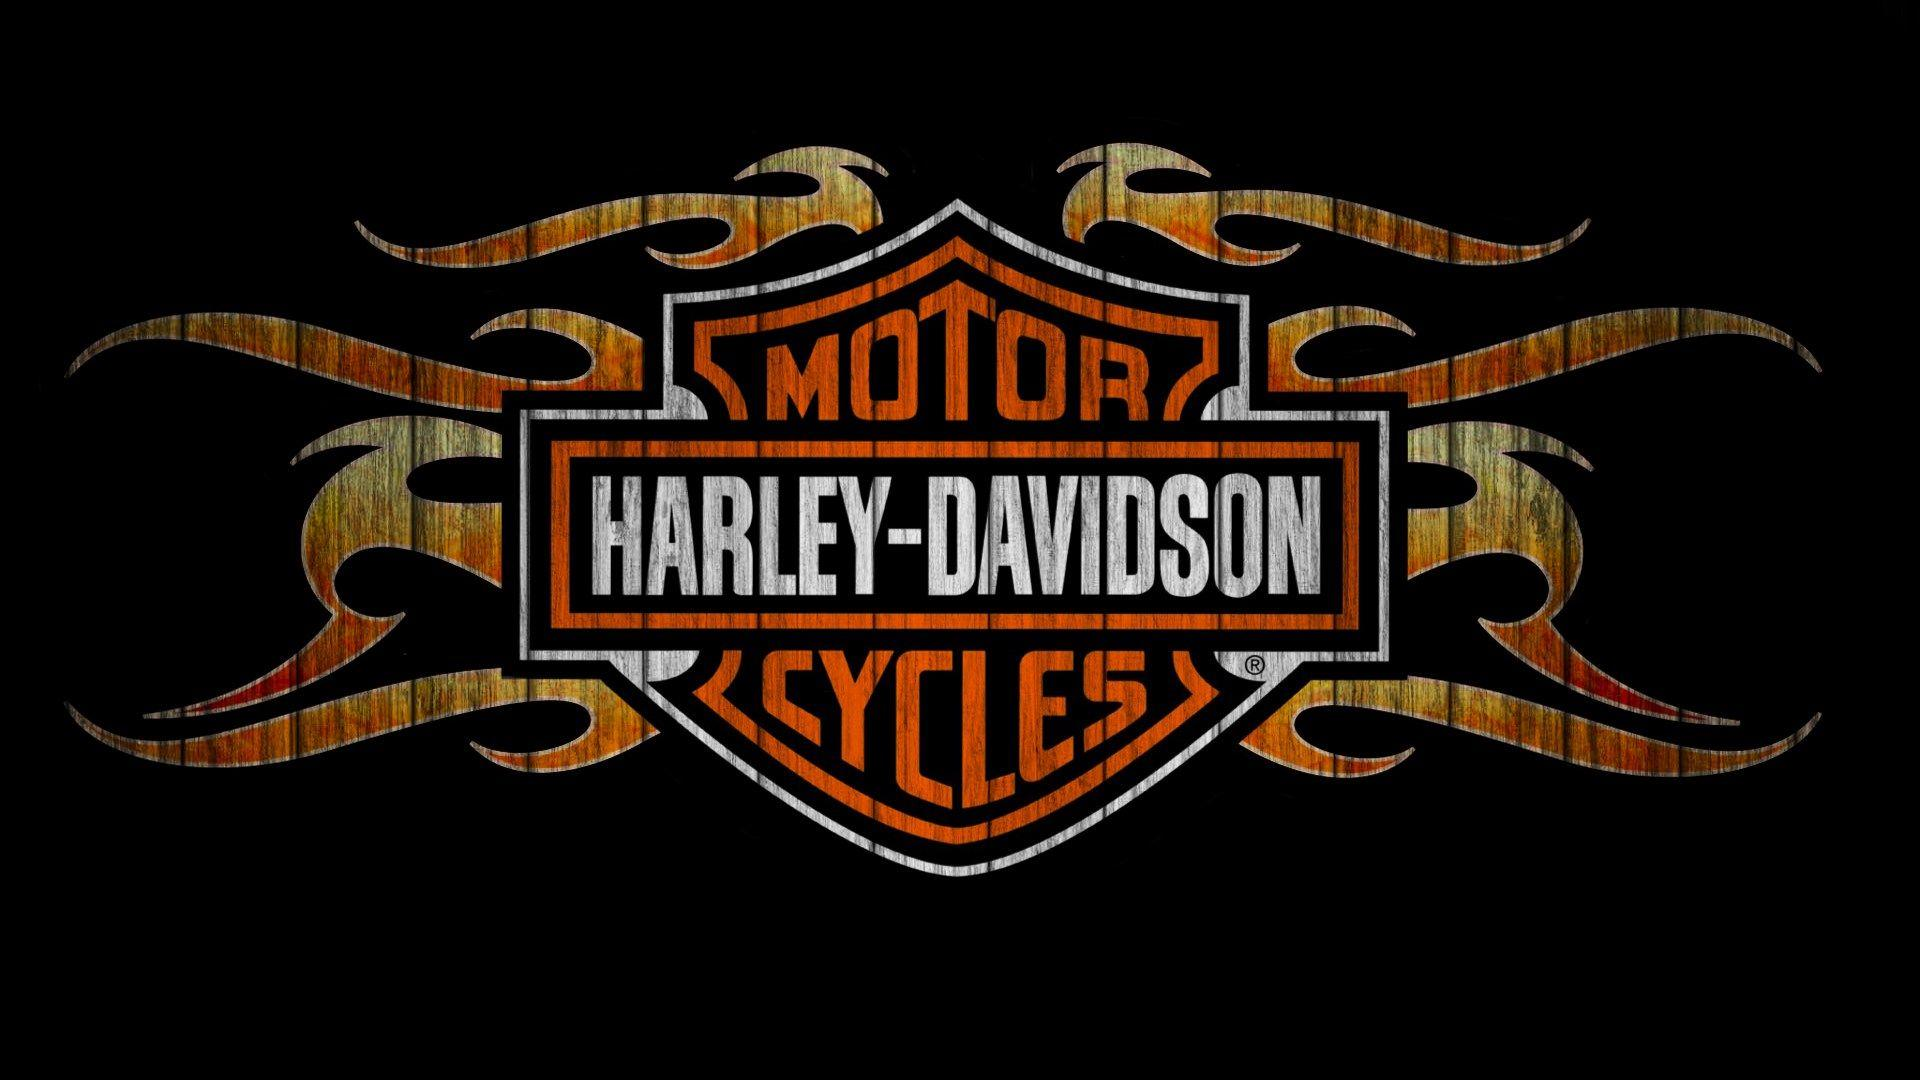 harley davidson wallpapers pack 1080p hd